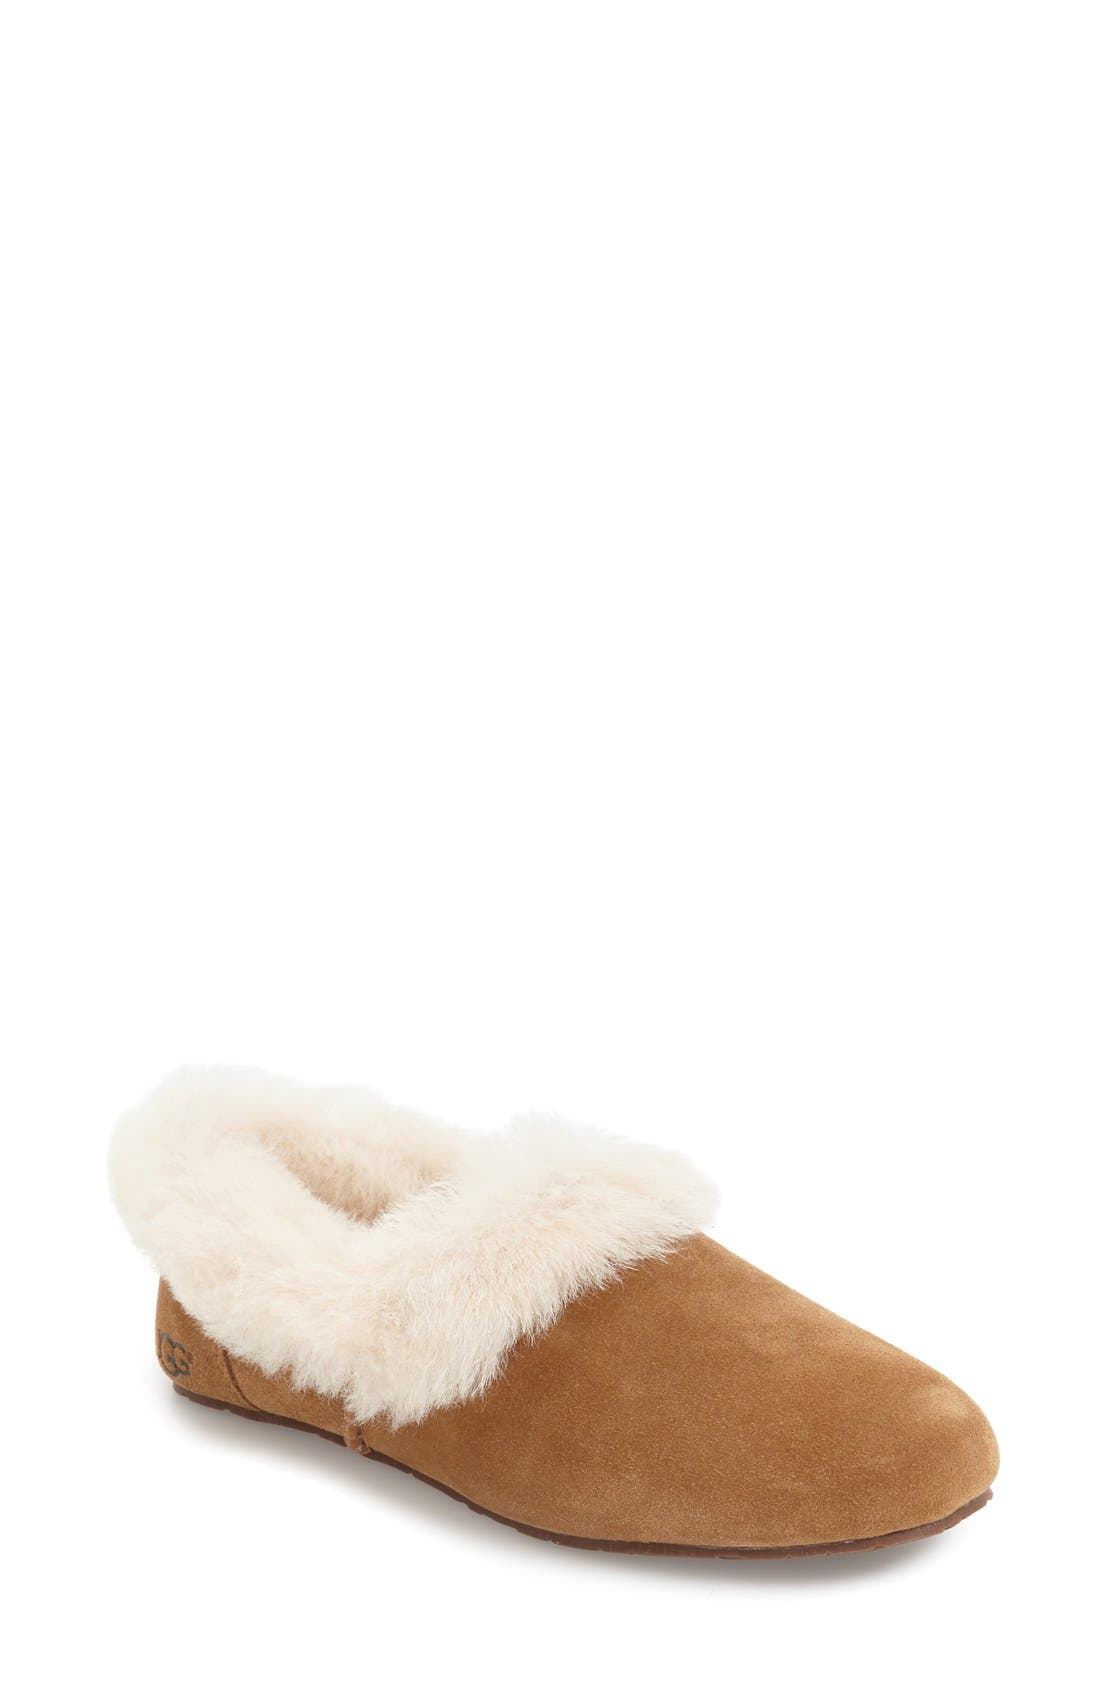 Main Image - UGG® Kendyl Genuine Shearling Slipper (Women)